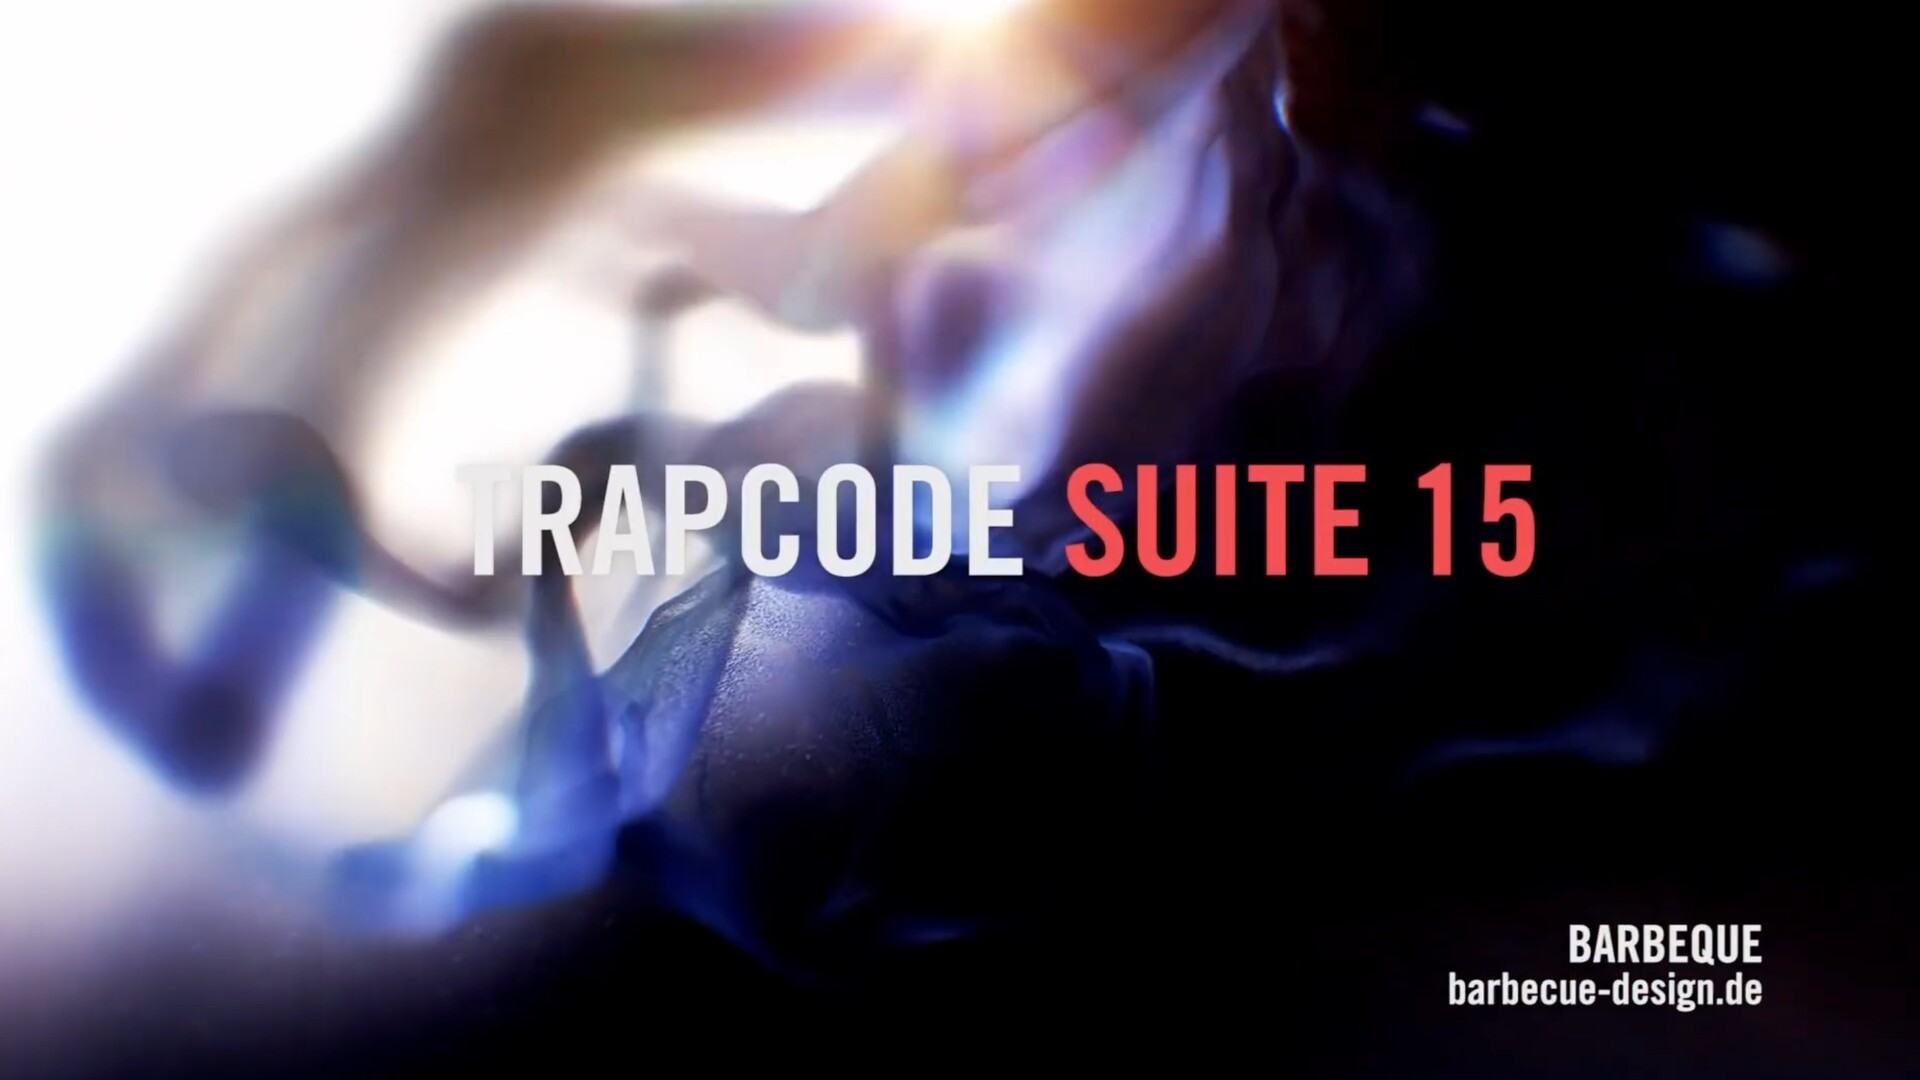 Trapcode Suite 15 for Mac(AE红巨星粒子套装插件)